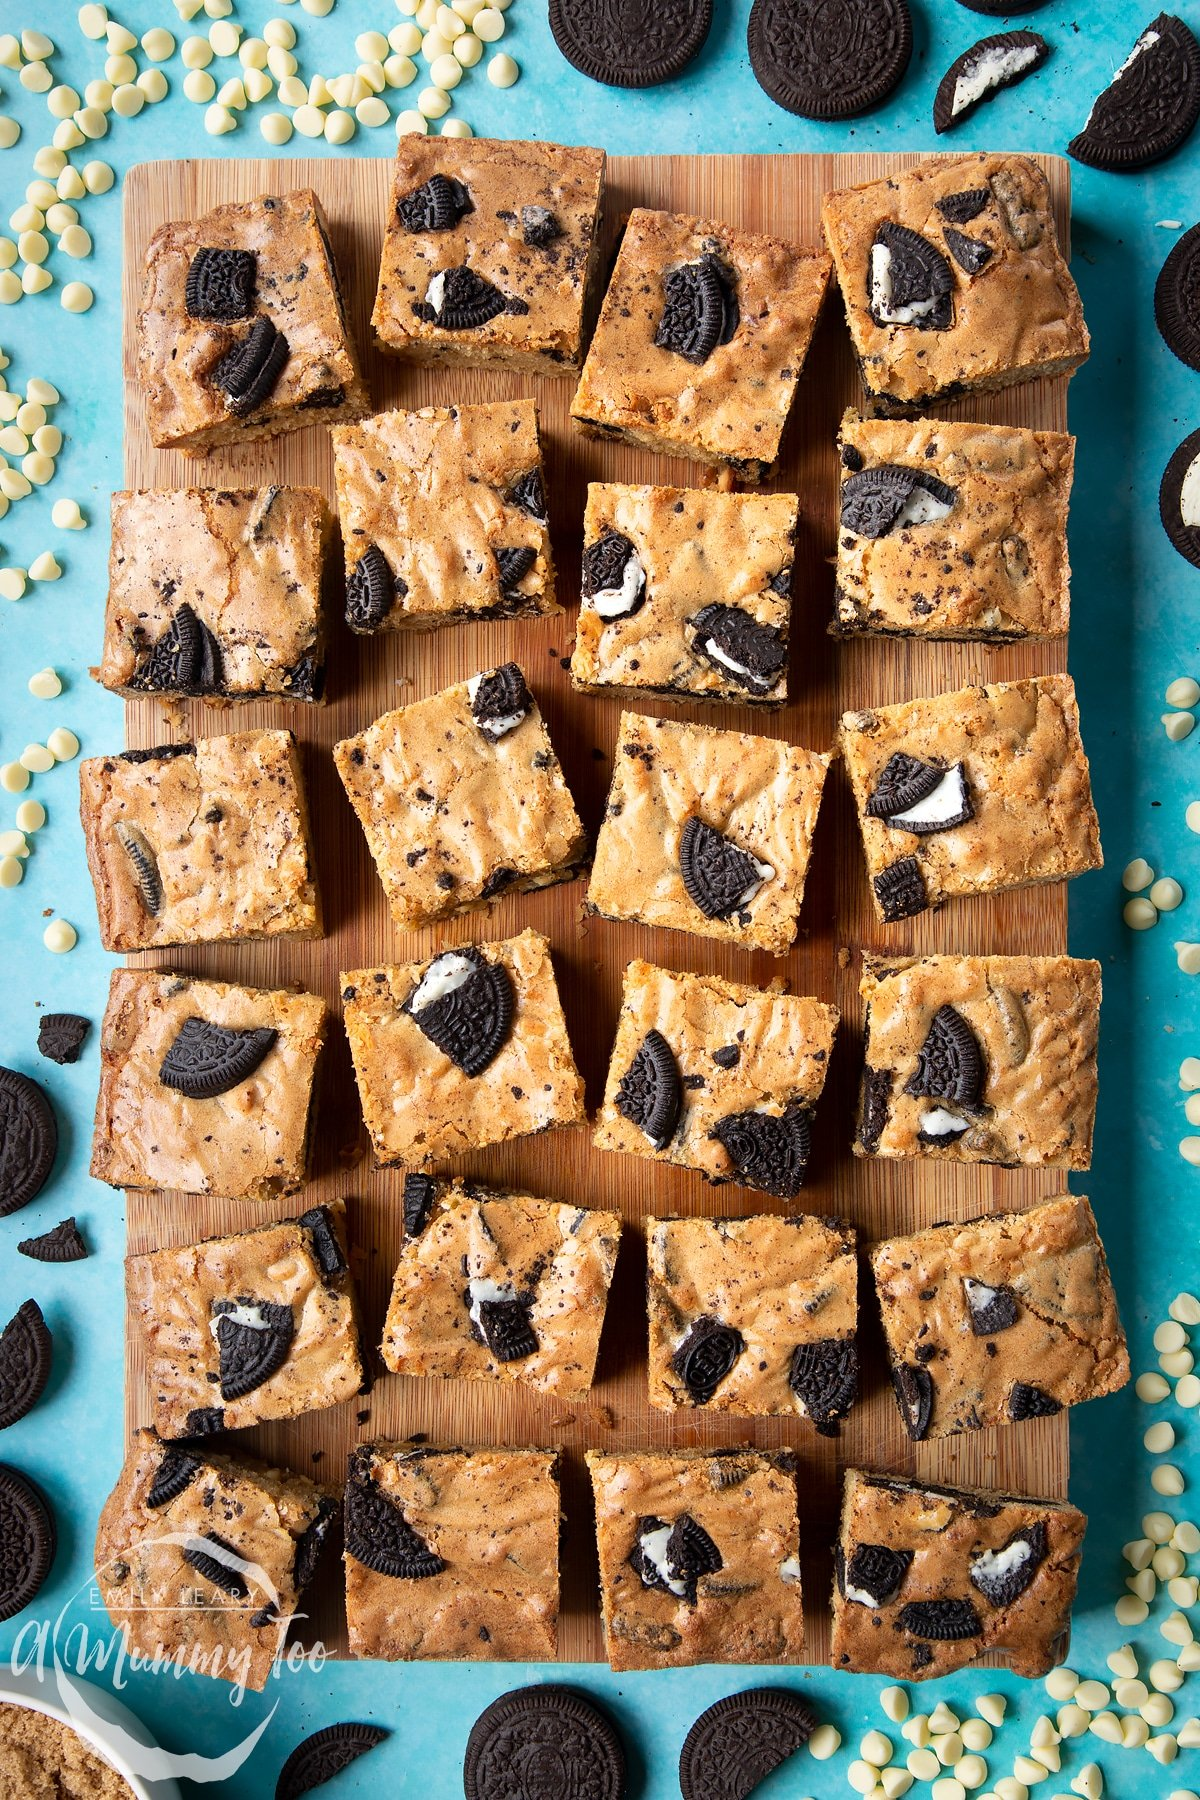 Overhead view of square Oreo Blondies on a wooden board